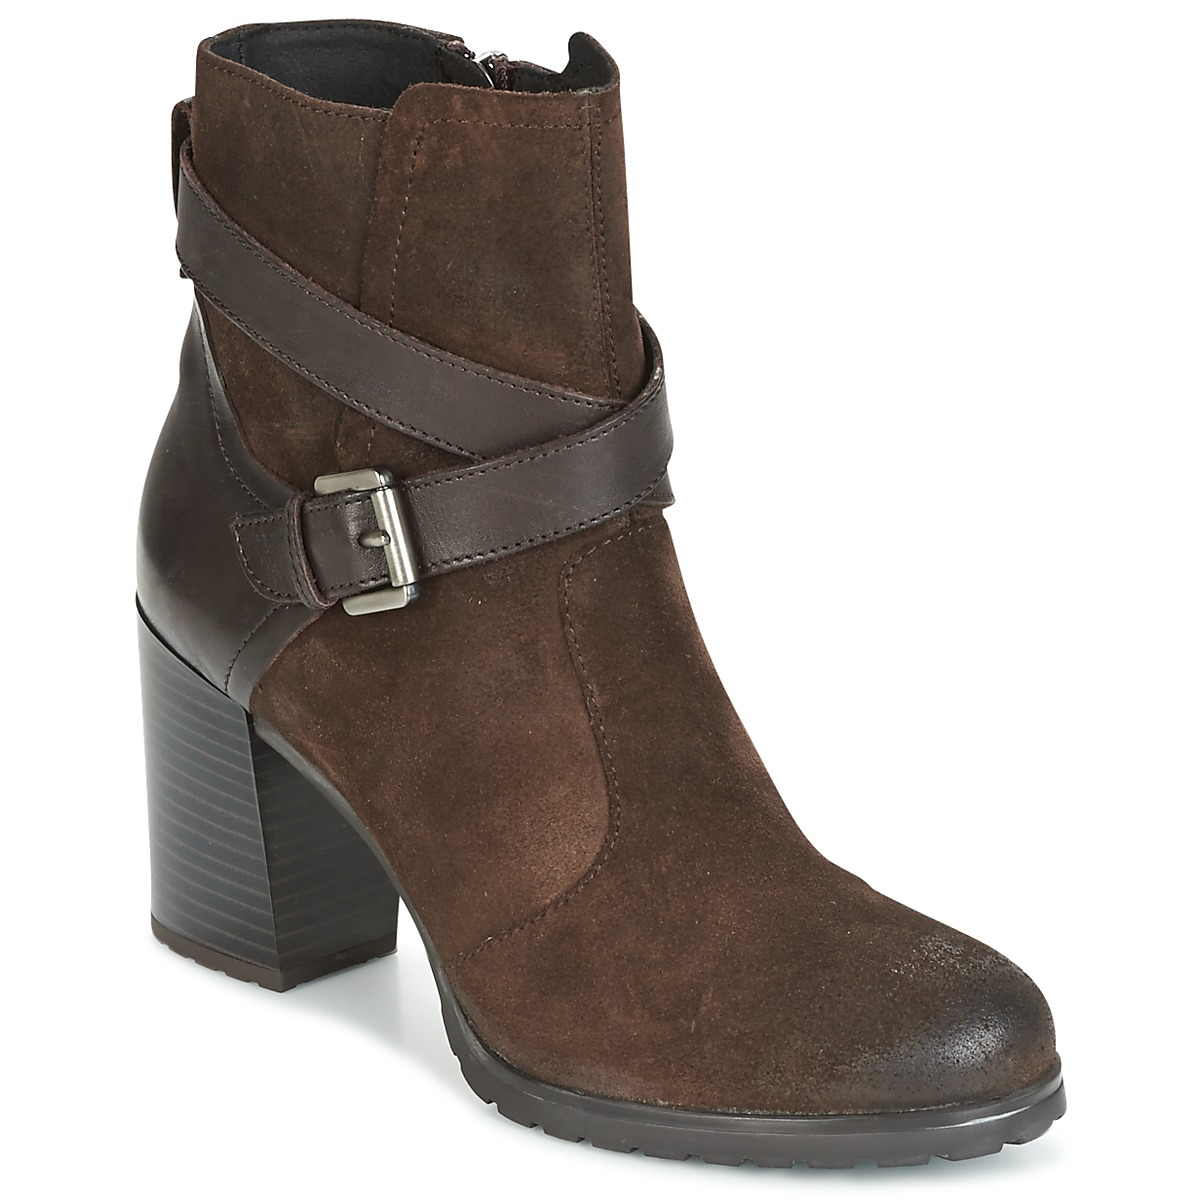 Geox D NEW LISE HIGH Marron Bottines Femme